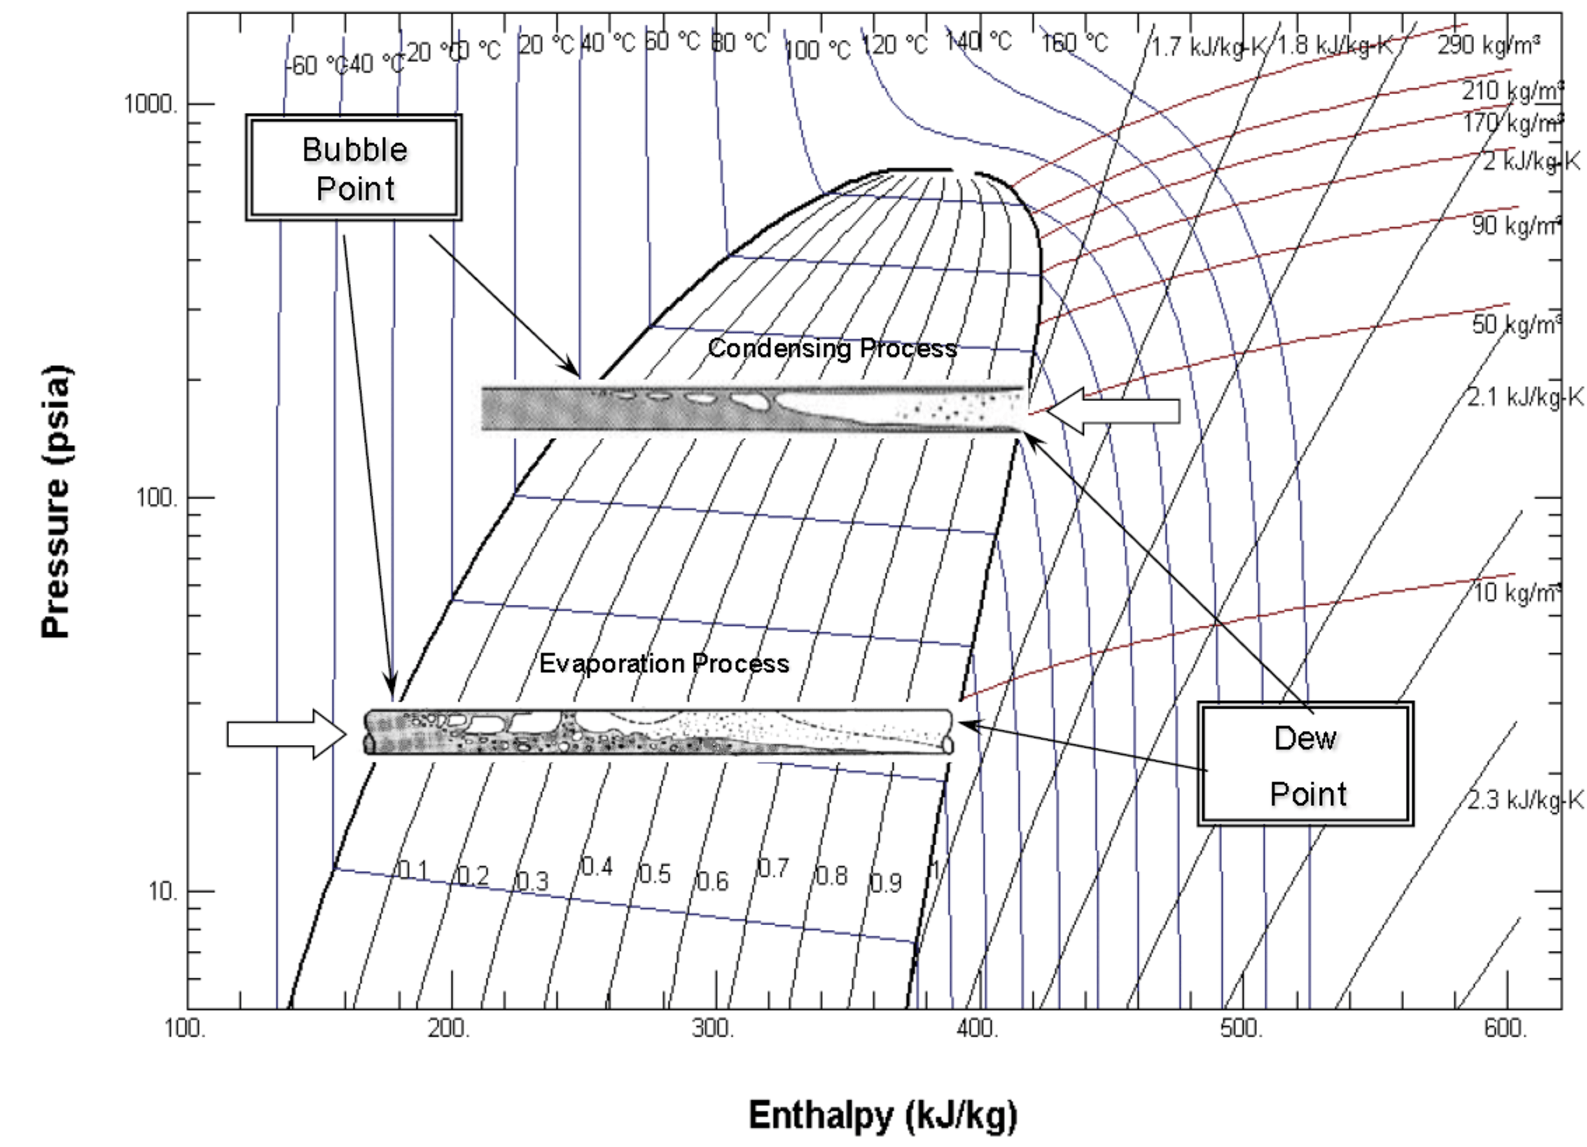 small resolution of figure 3 mollier diagram p h chart condensing and evaporation process courtesy honeywell